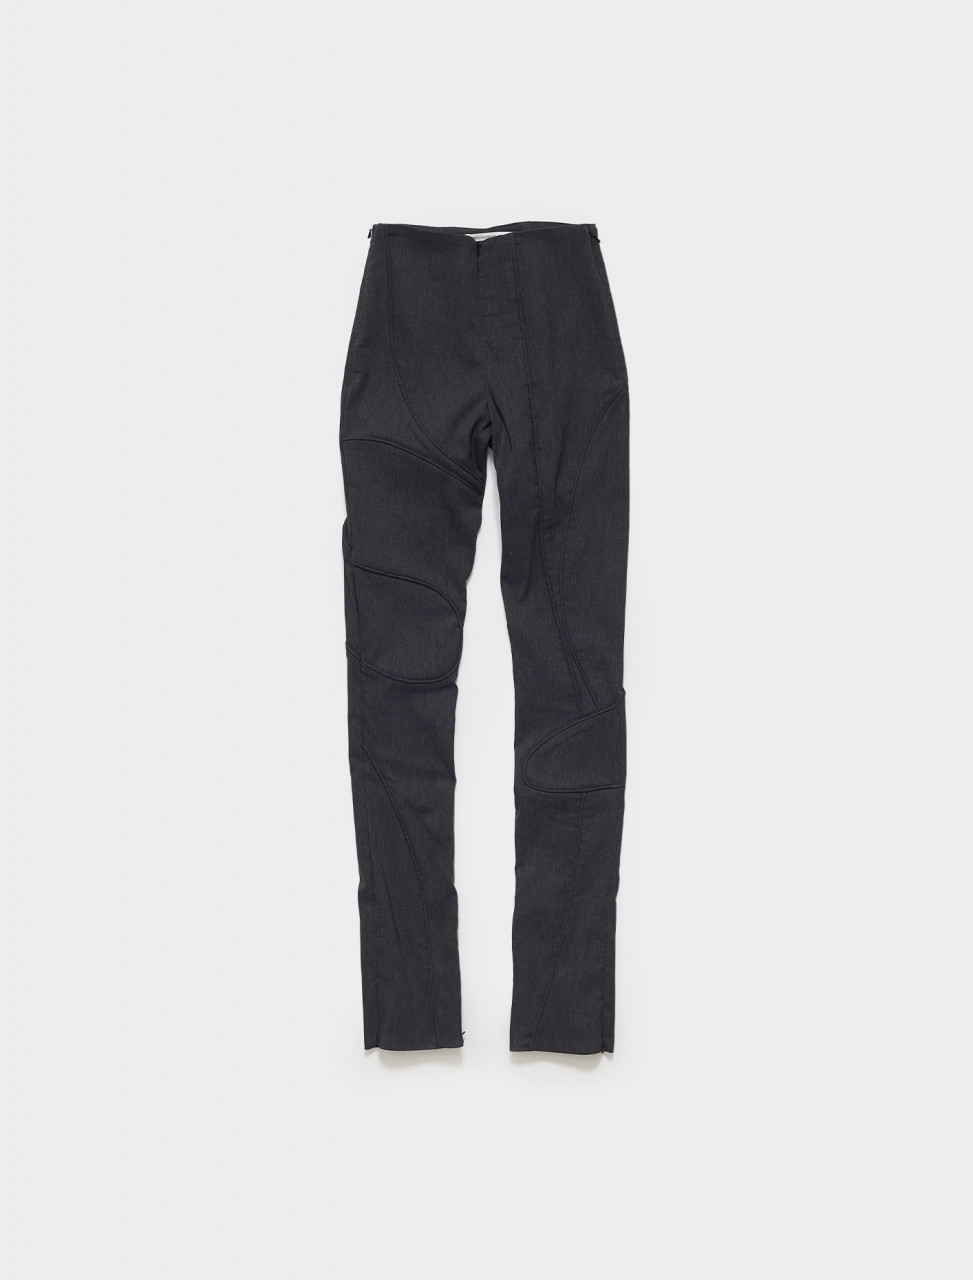 SS21Ines MAINLINE INES STRETCHY PIPING TROUSERS WITH ZIPS IN GREY